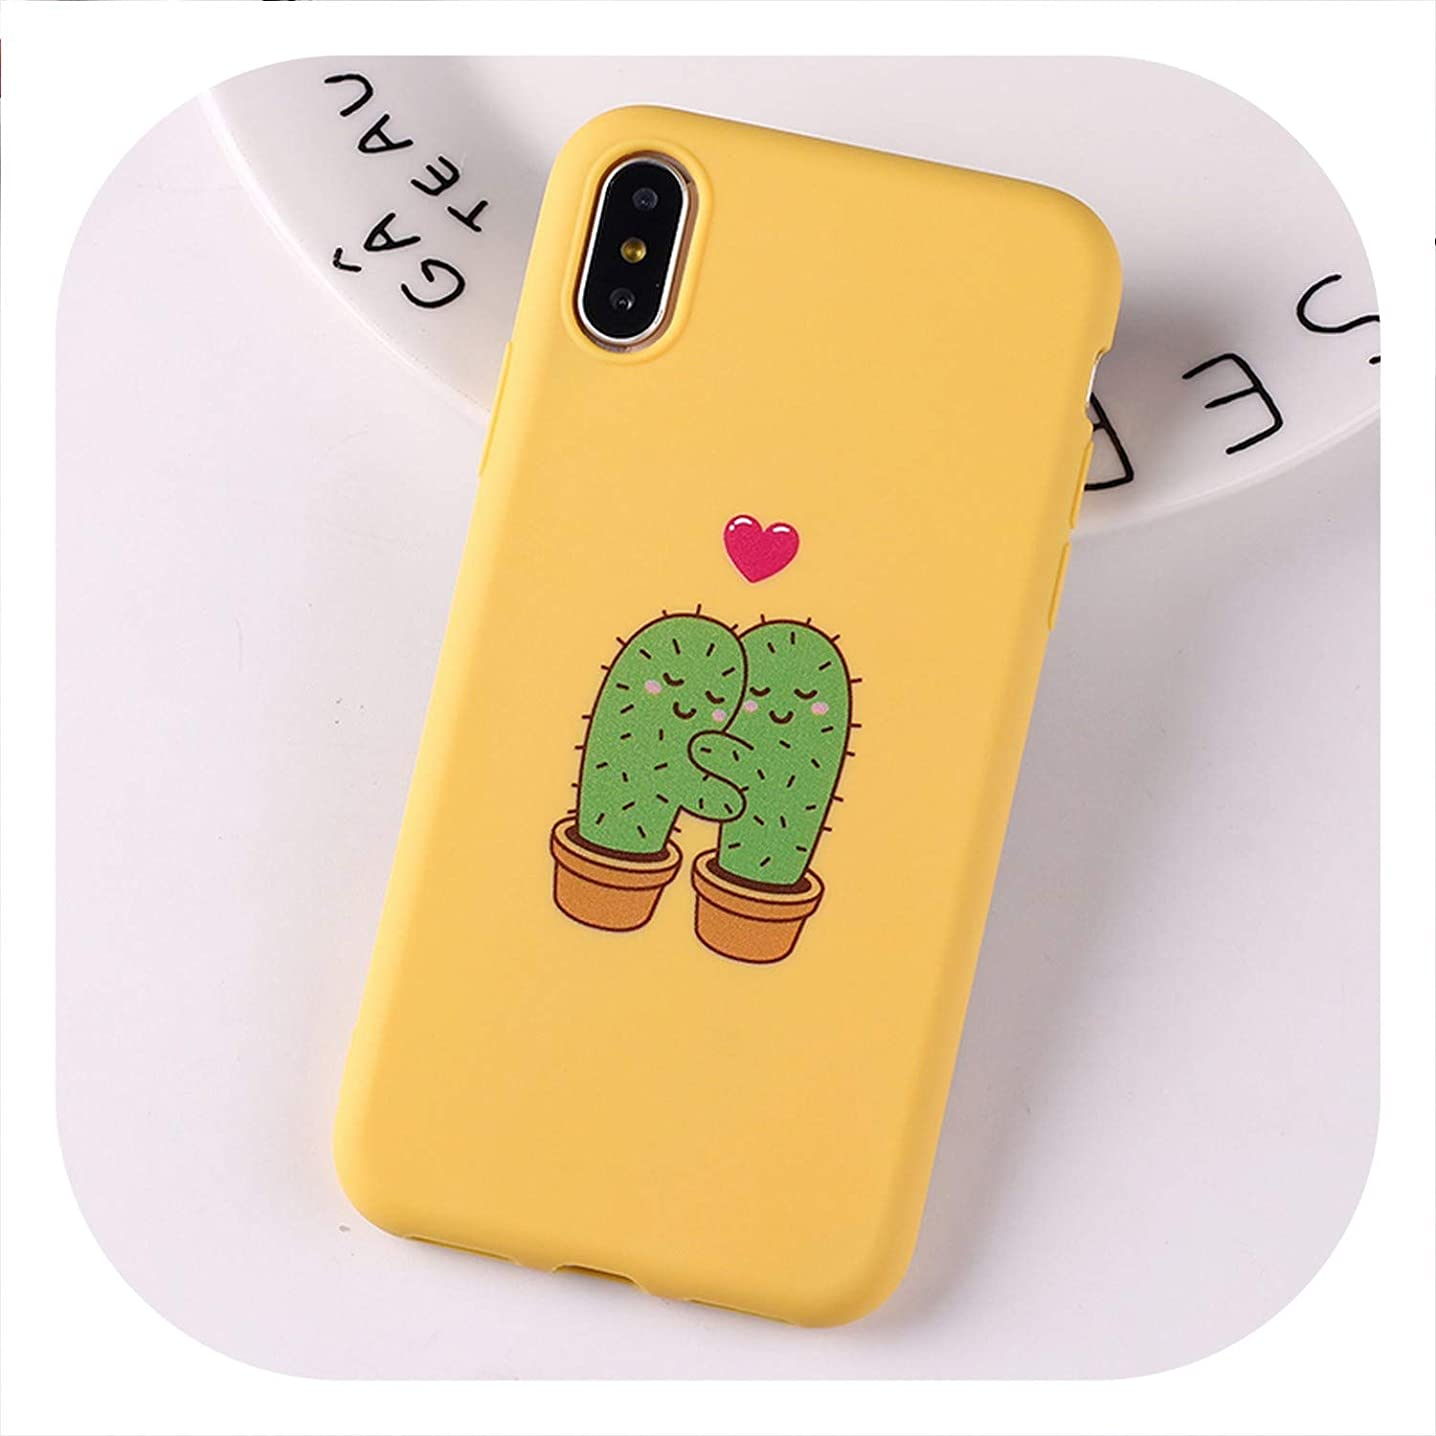 Coque Princess Crown Donuts Space Pink Cactus Cat Cute for iPhone 6S 5S SE 8 8Plus X 7 7Plus XS Max Soft TPU Silicone Candy Case,9,for iPhone XR